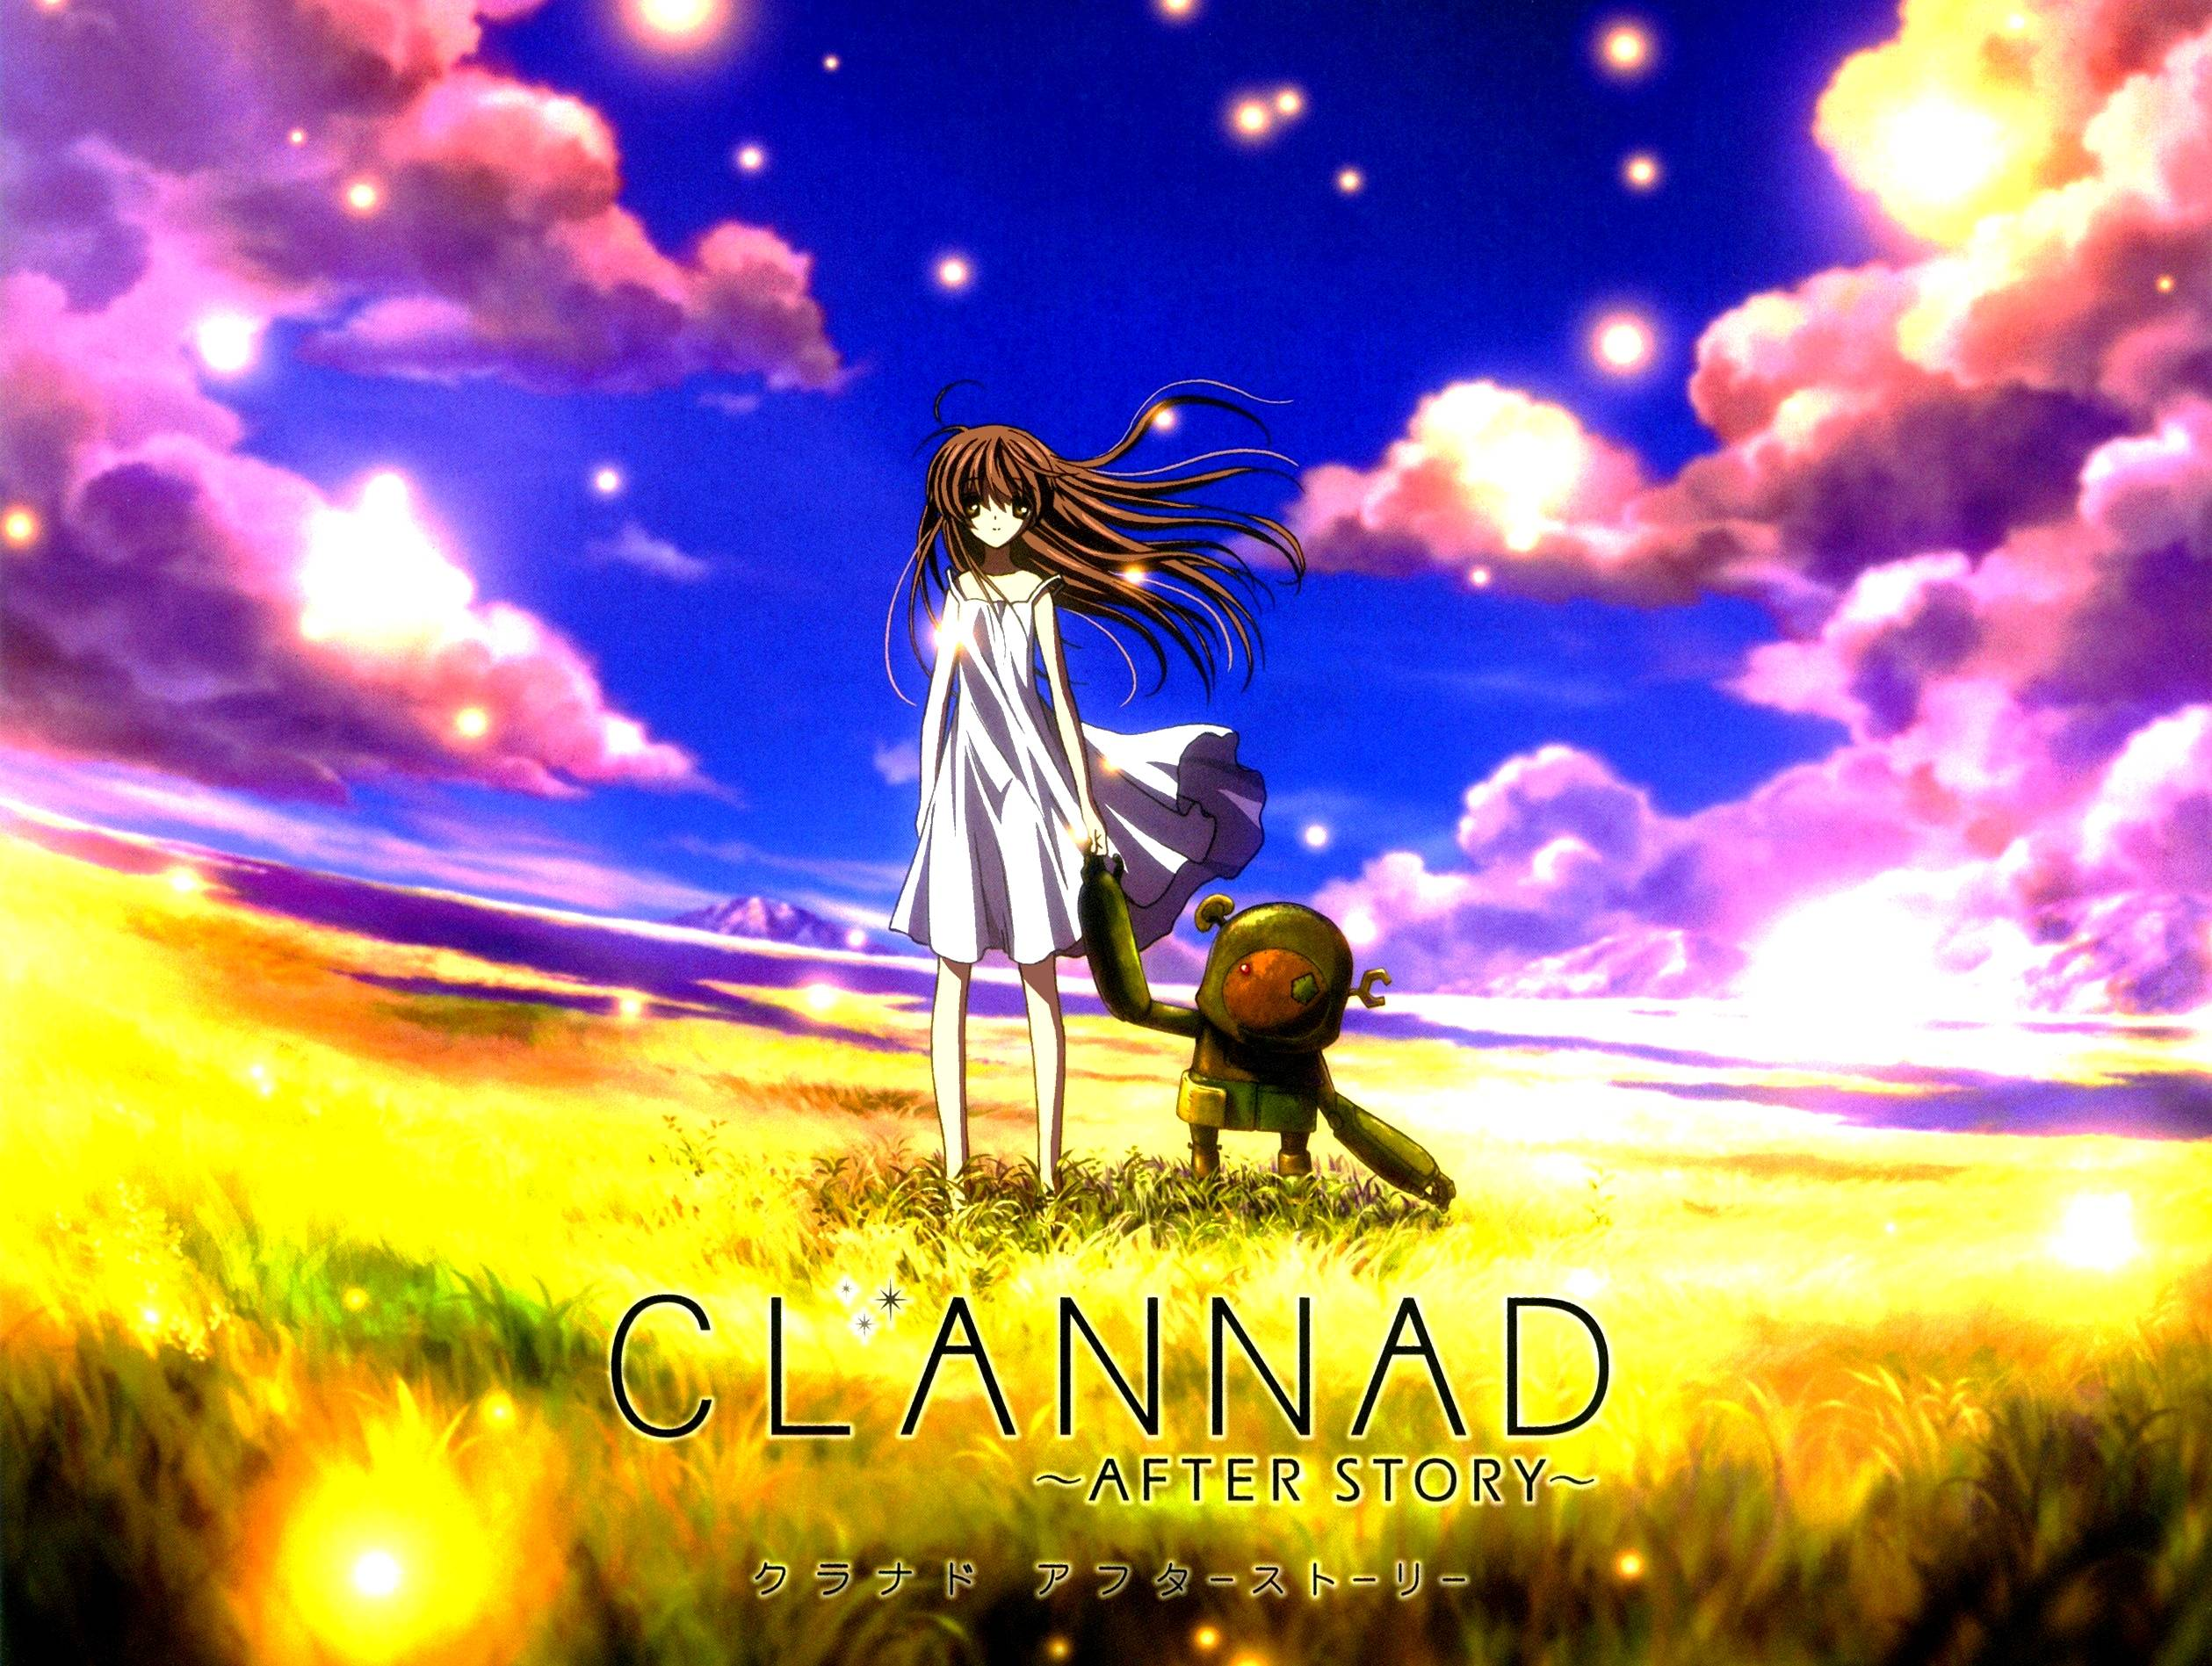 Clannad Wallpapers - Wallpaper Cave Wallpaper